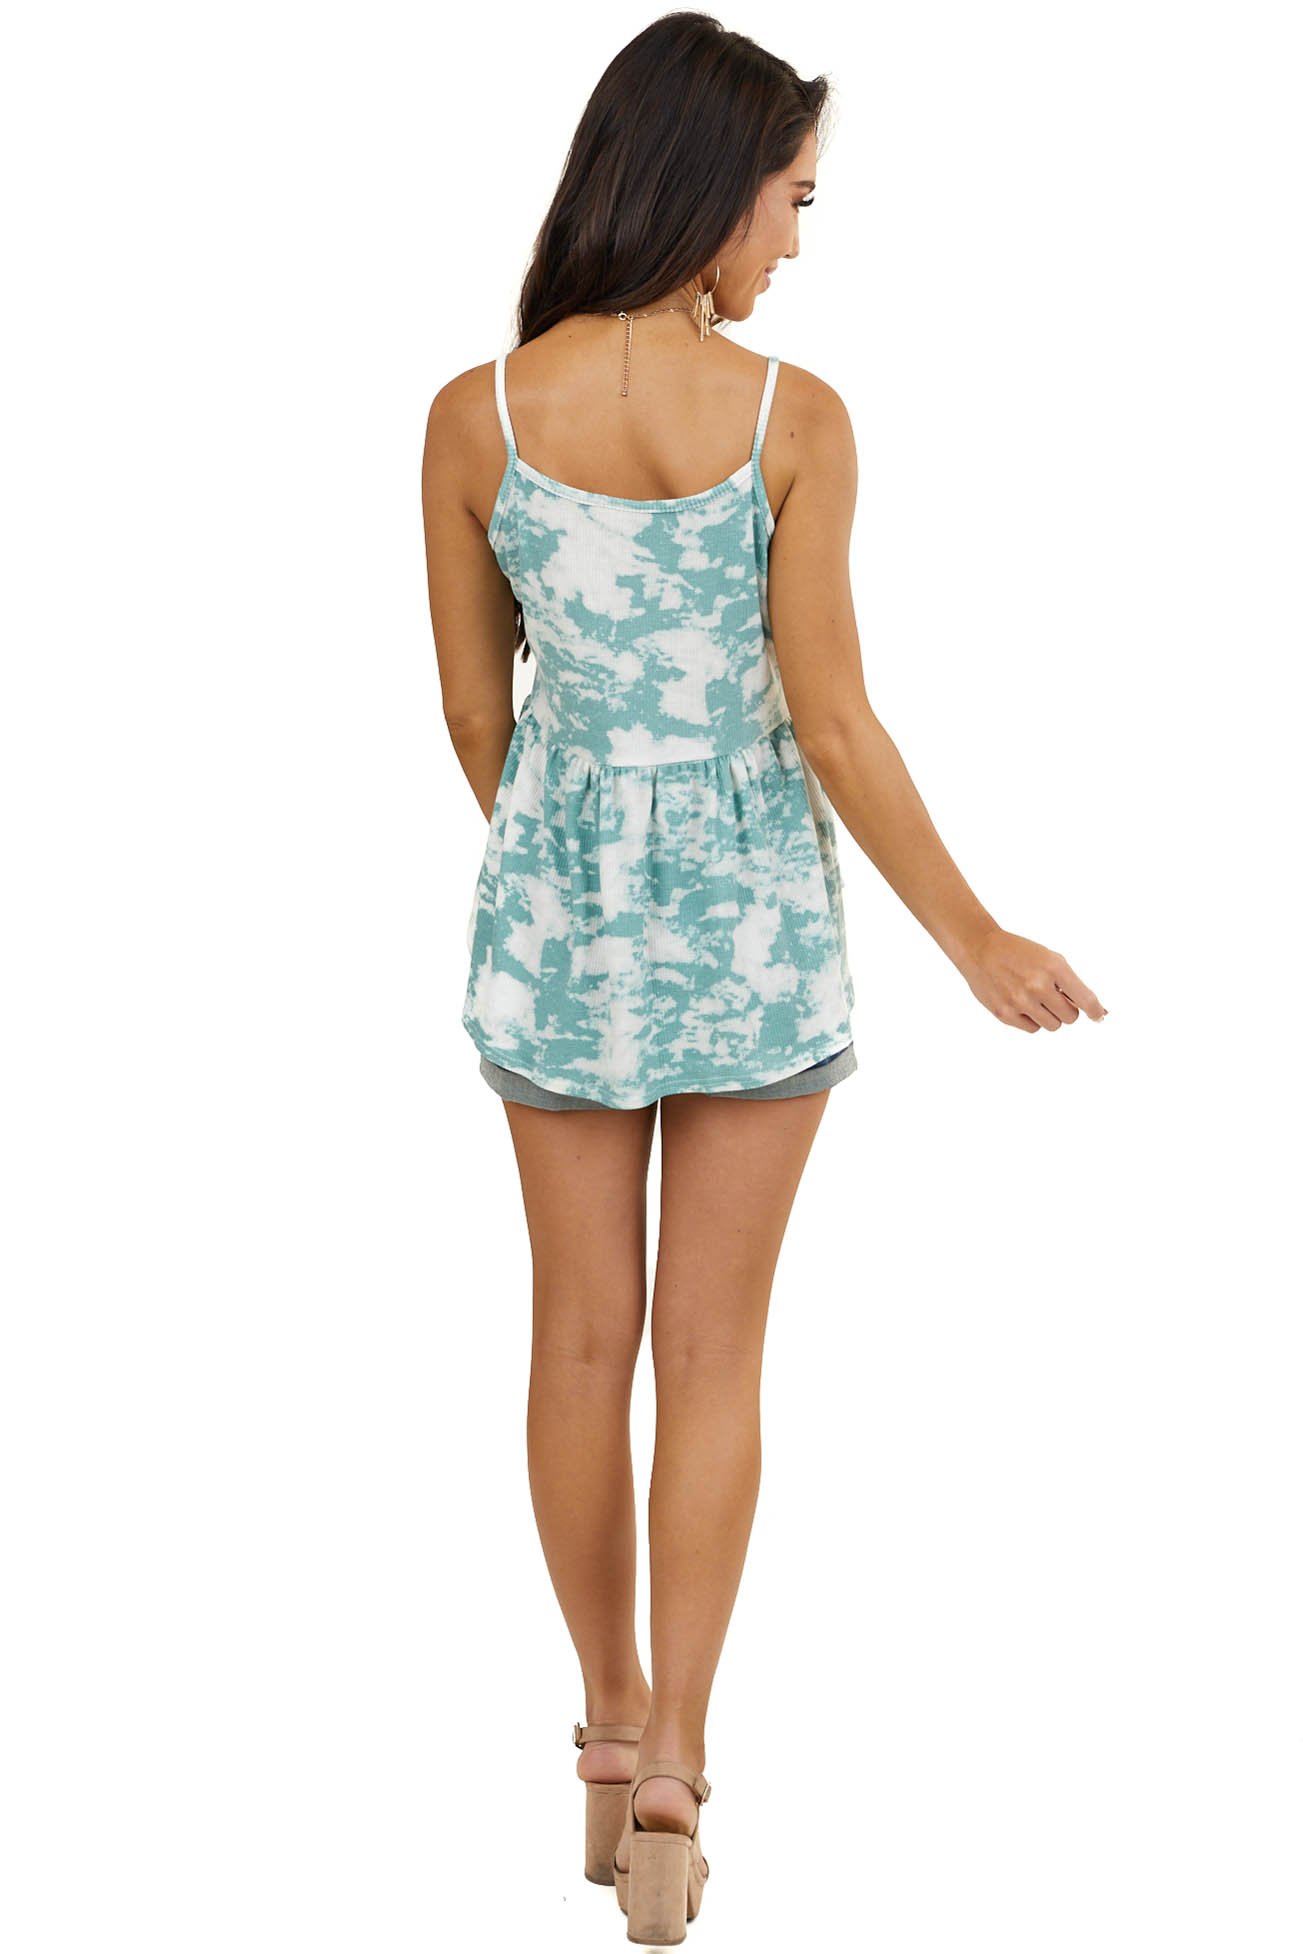 Faded Teal Tie Dye Babydoll Tank Top with V Neckline